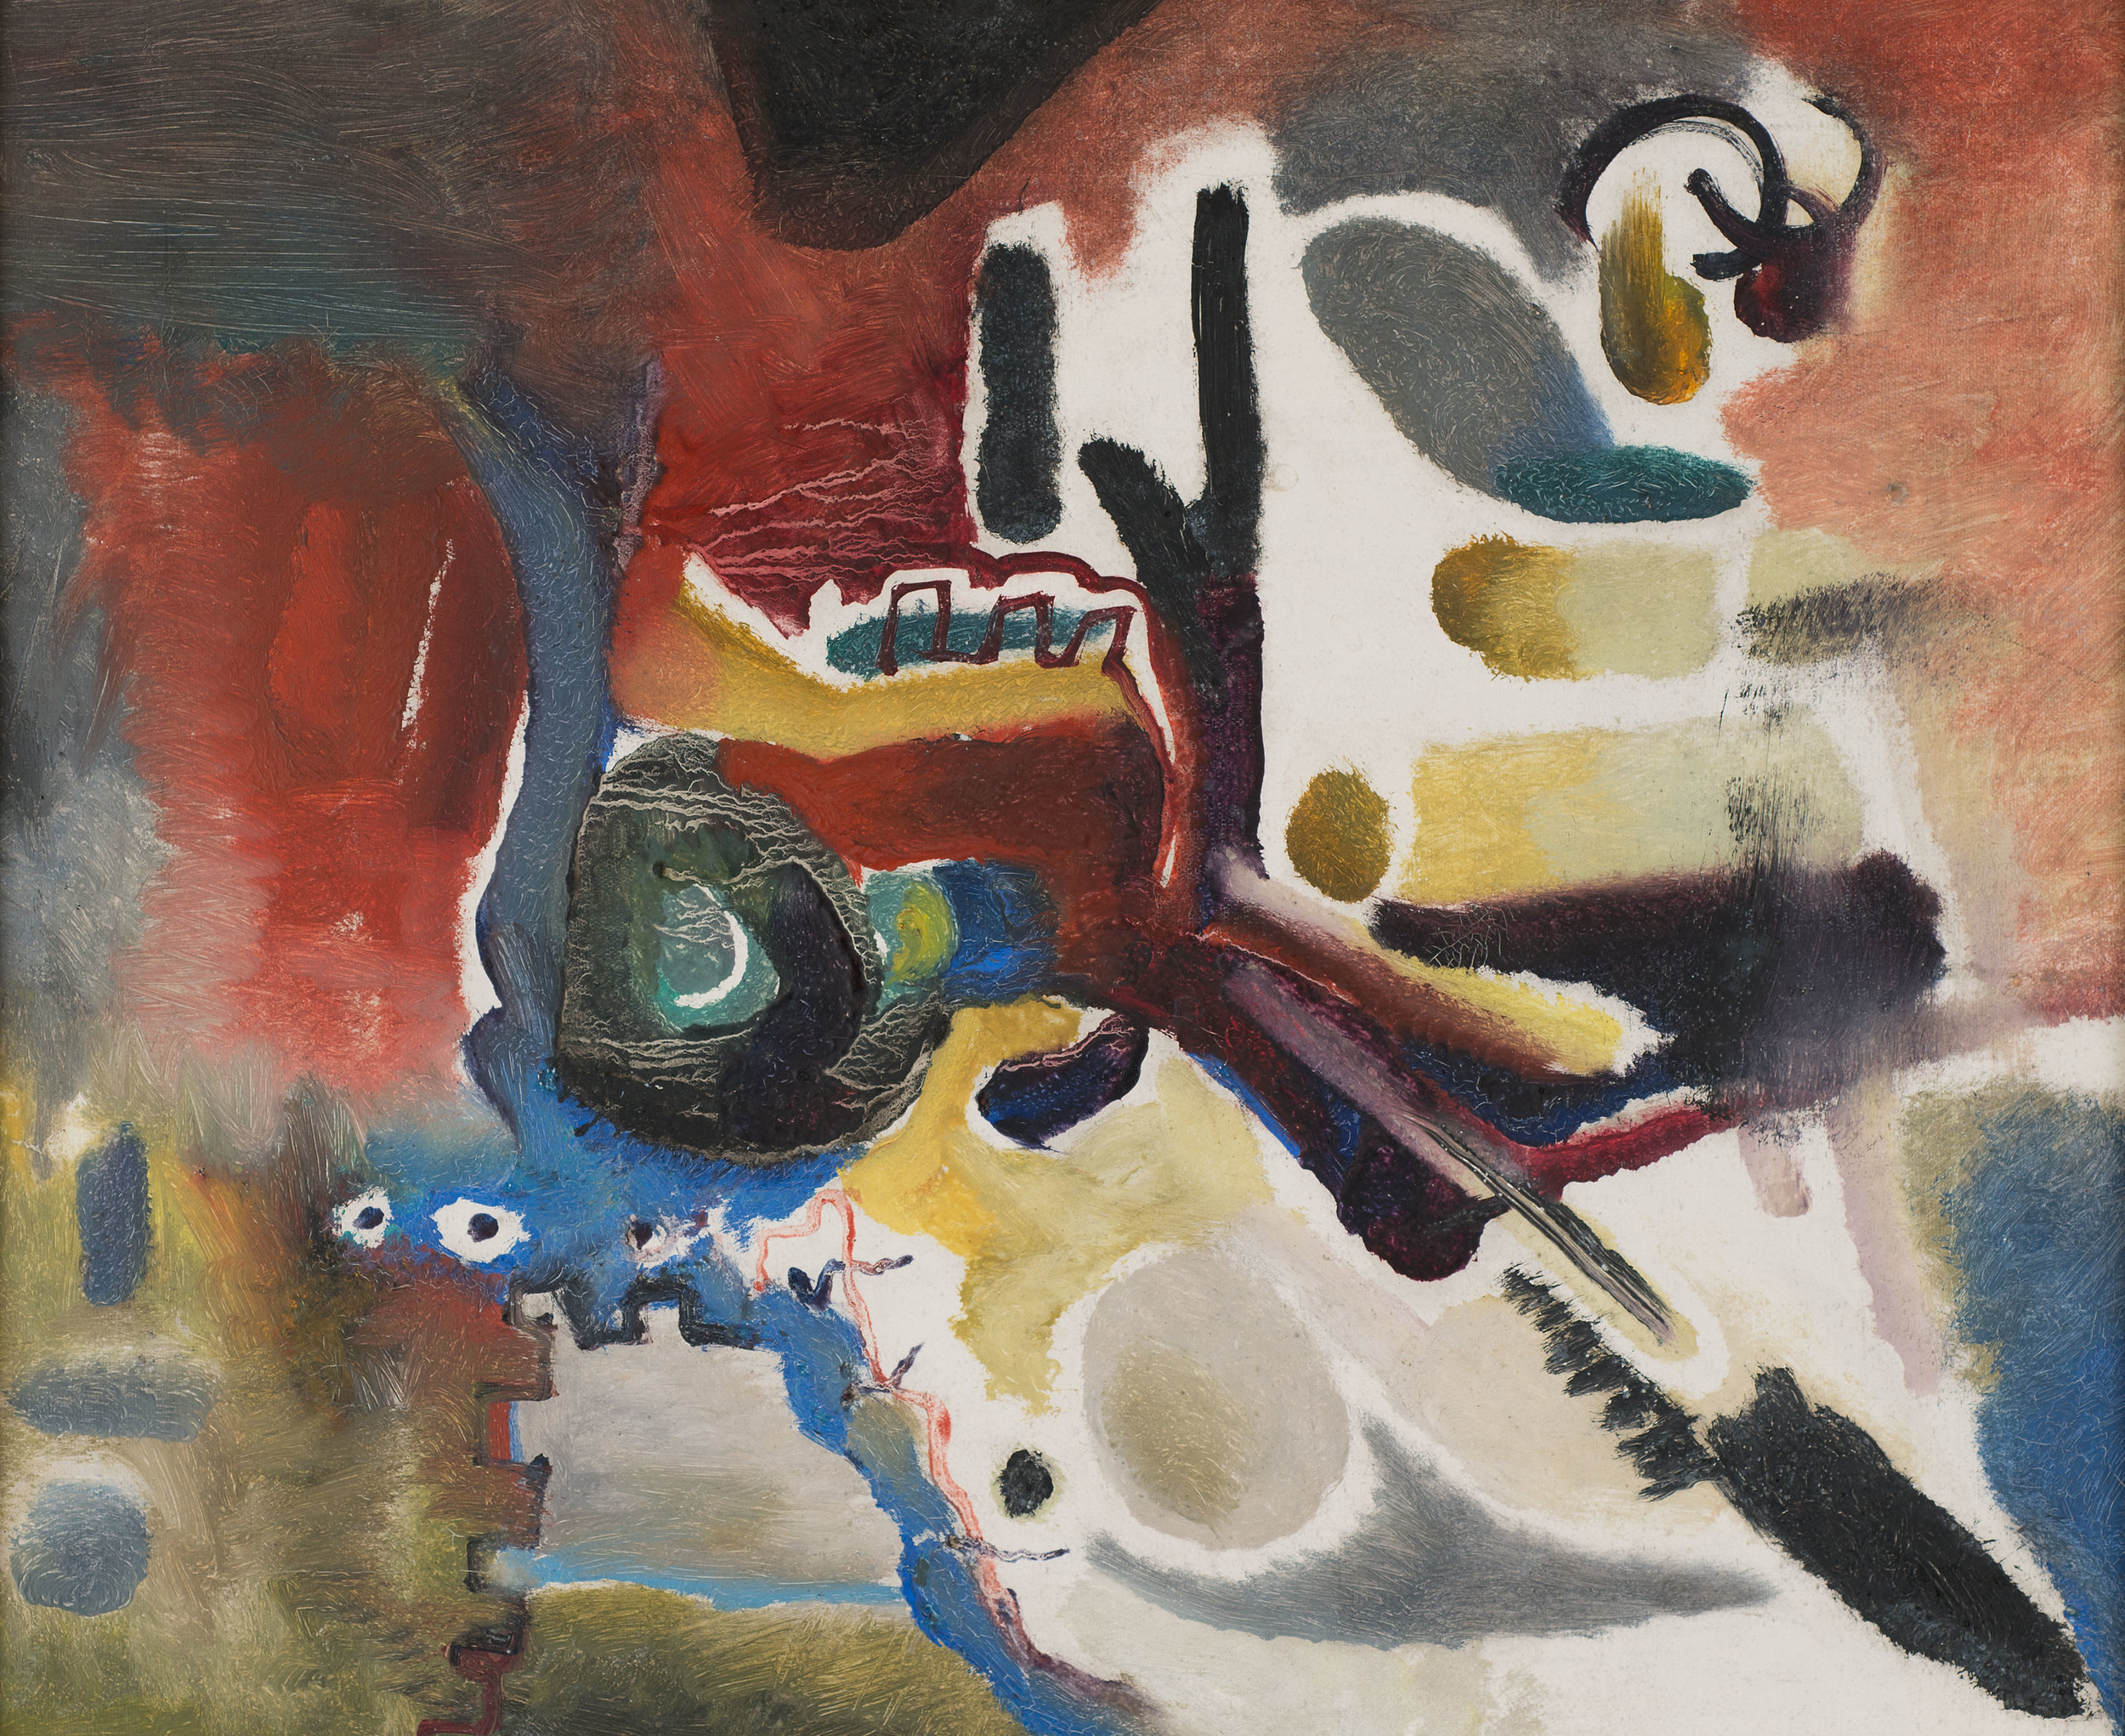 Untitled (2), oil on canvas, 23.75 x 27